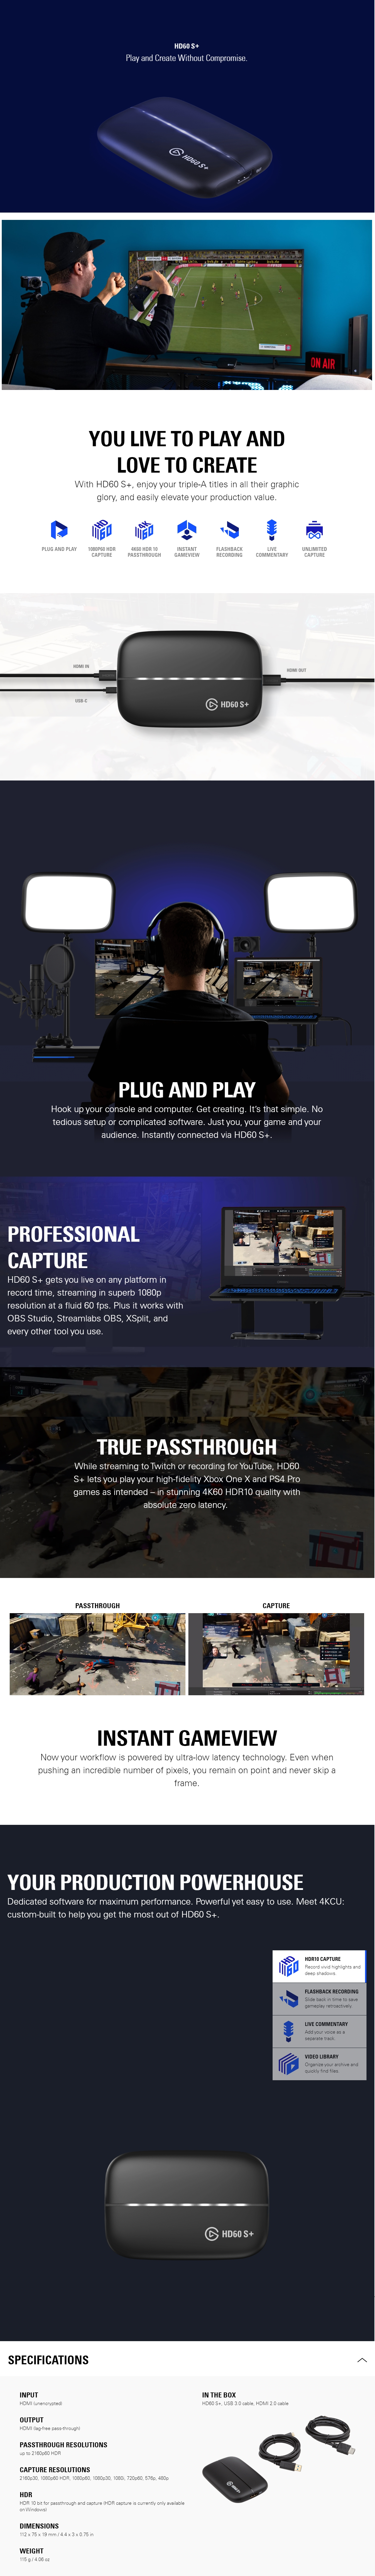 A large marketing image providing additional information about the product Elgato Game Capture HD60 S+ - Additional alt info not provided